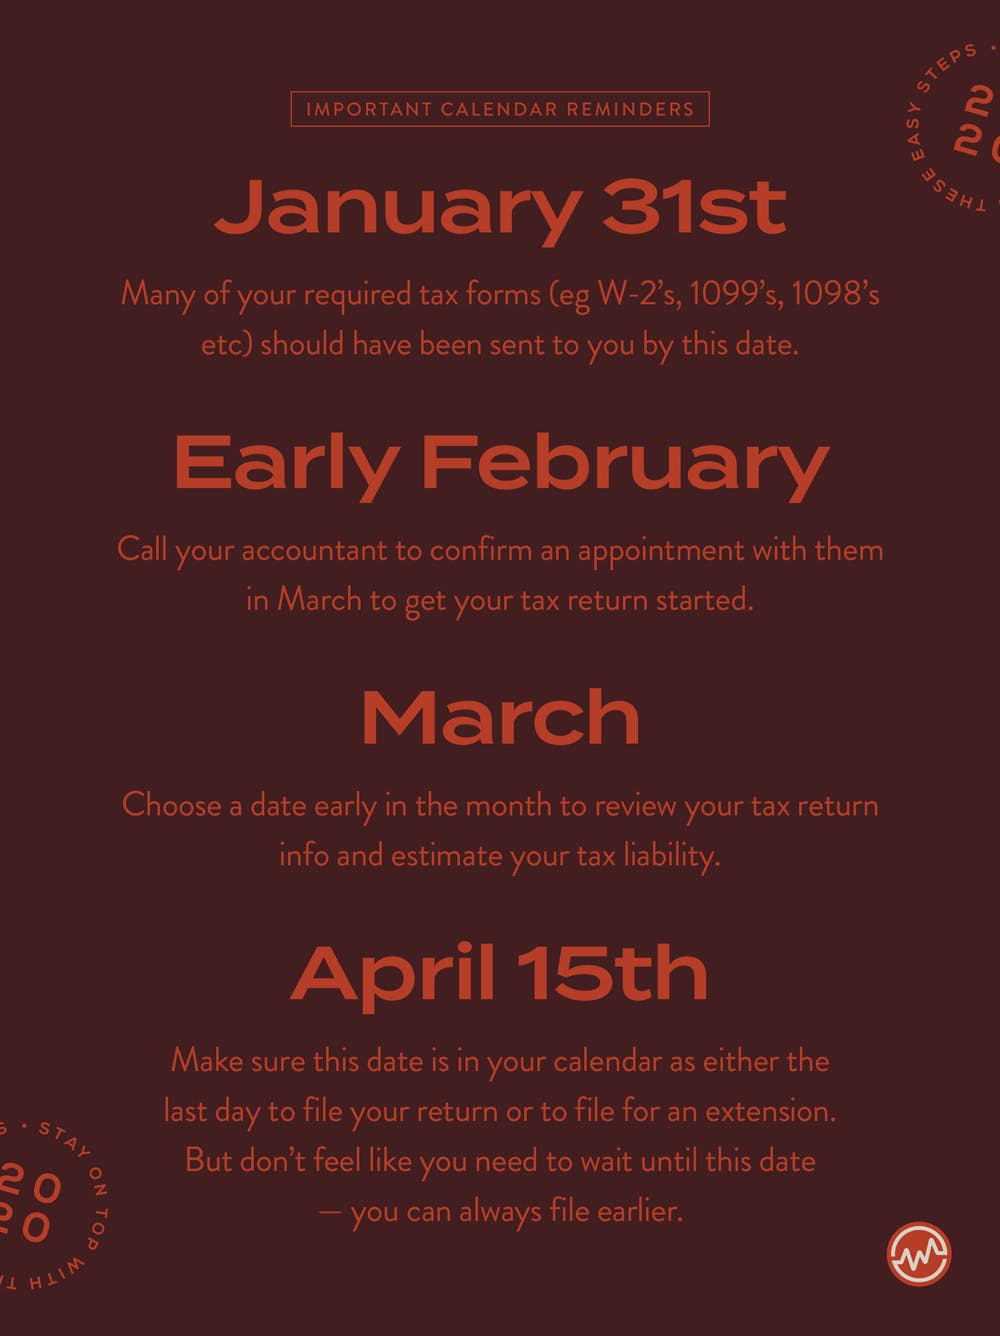 Important tax dates to remember